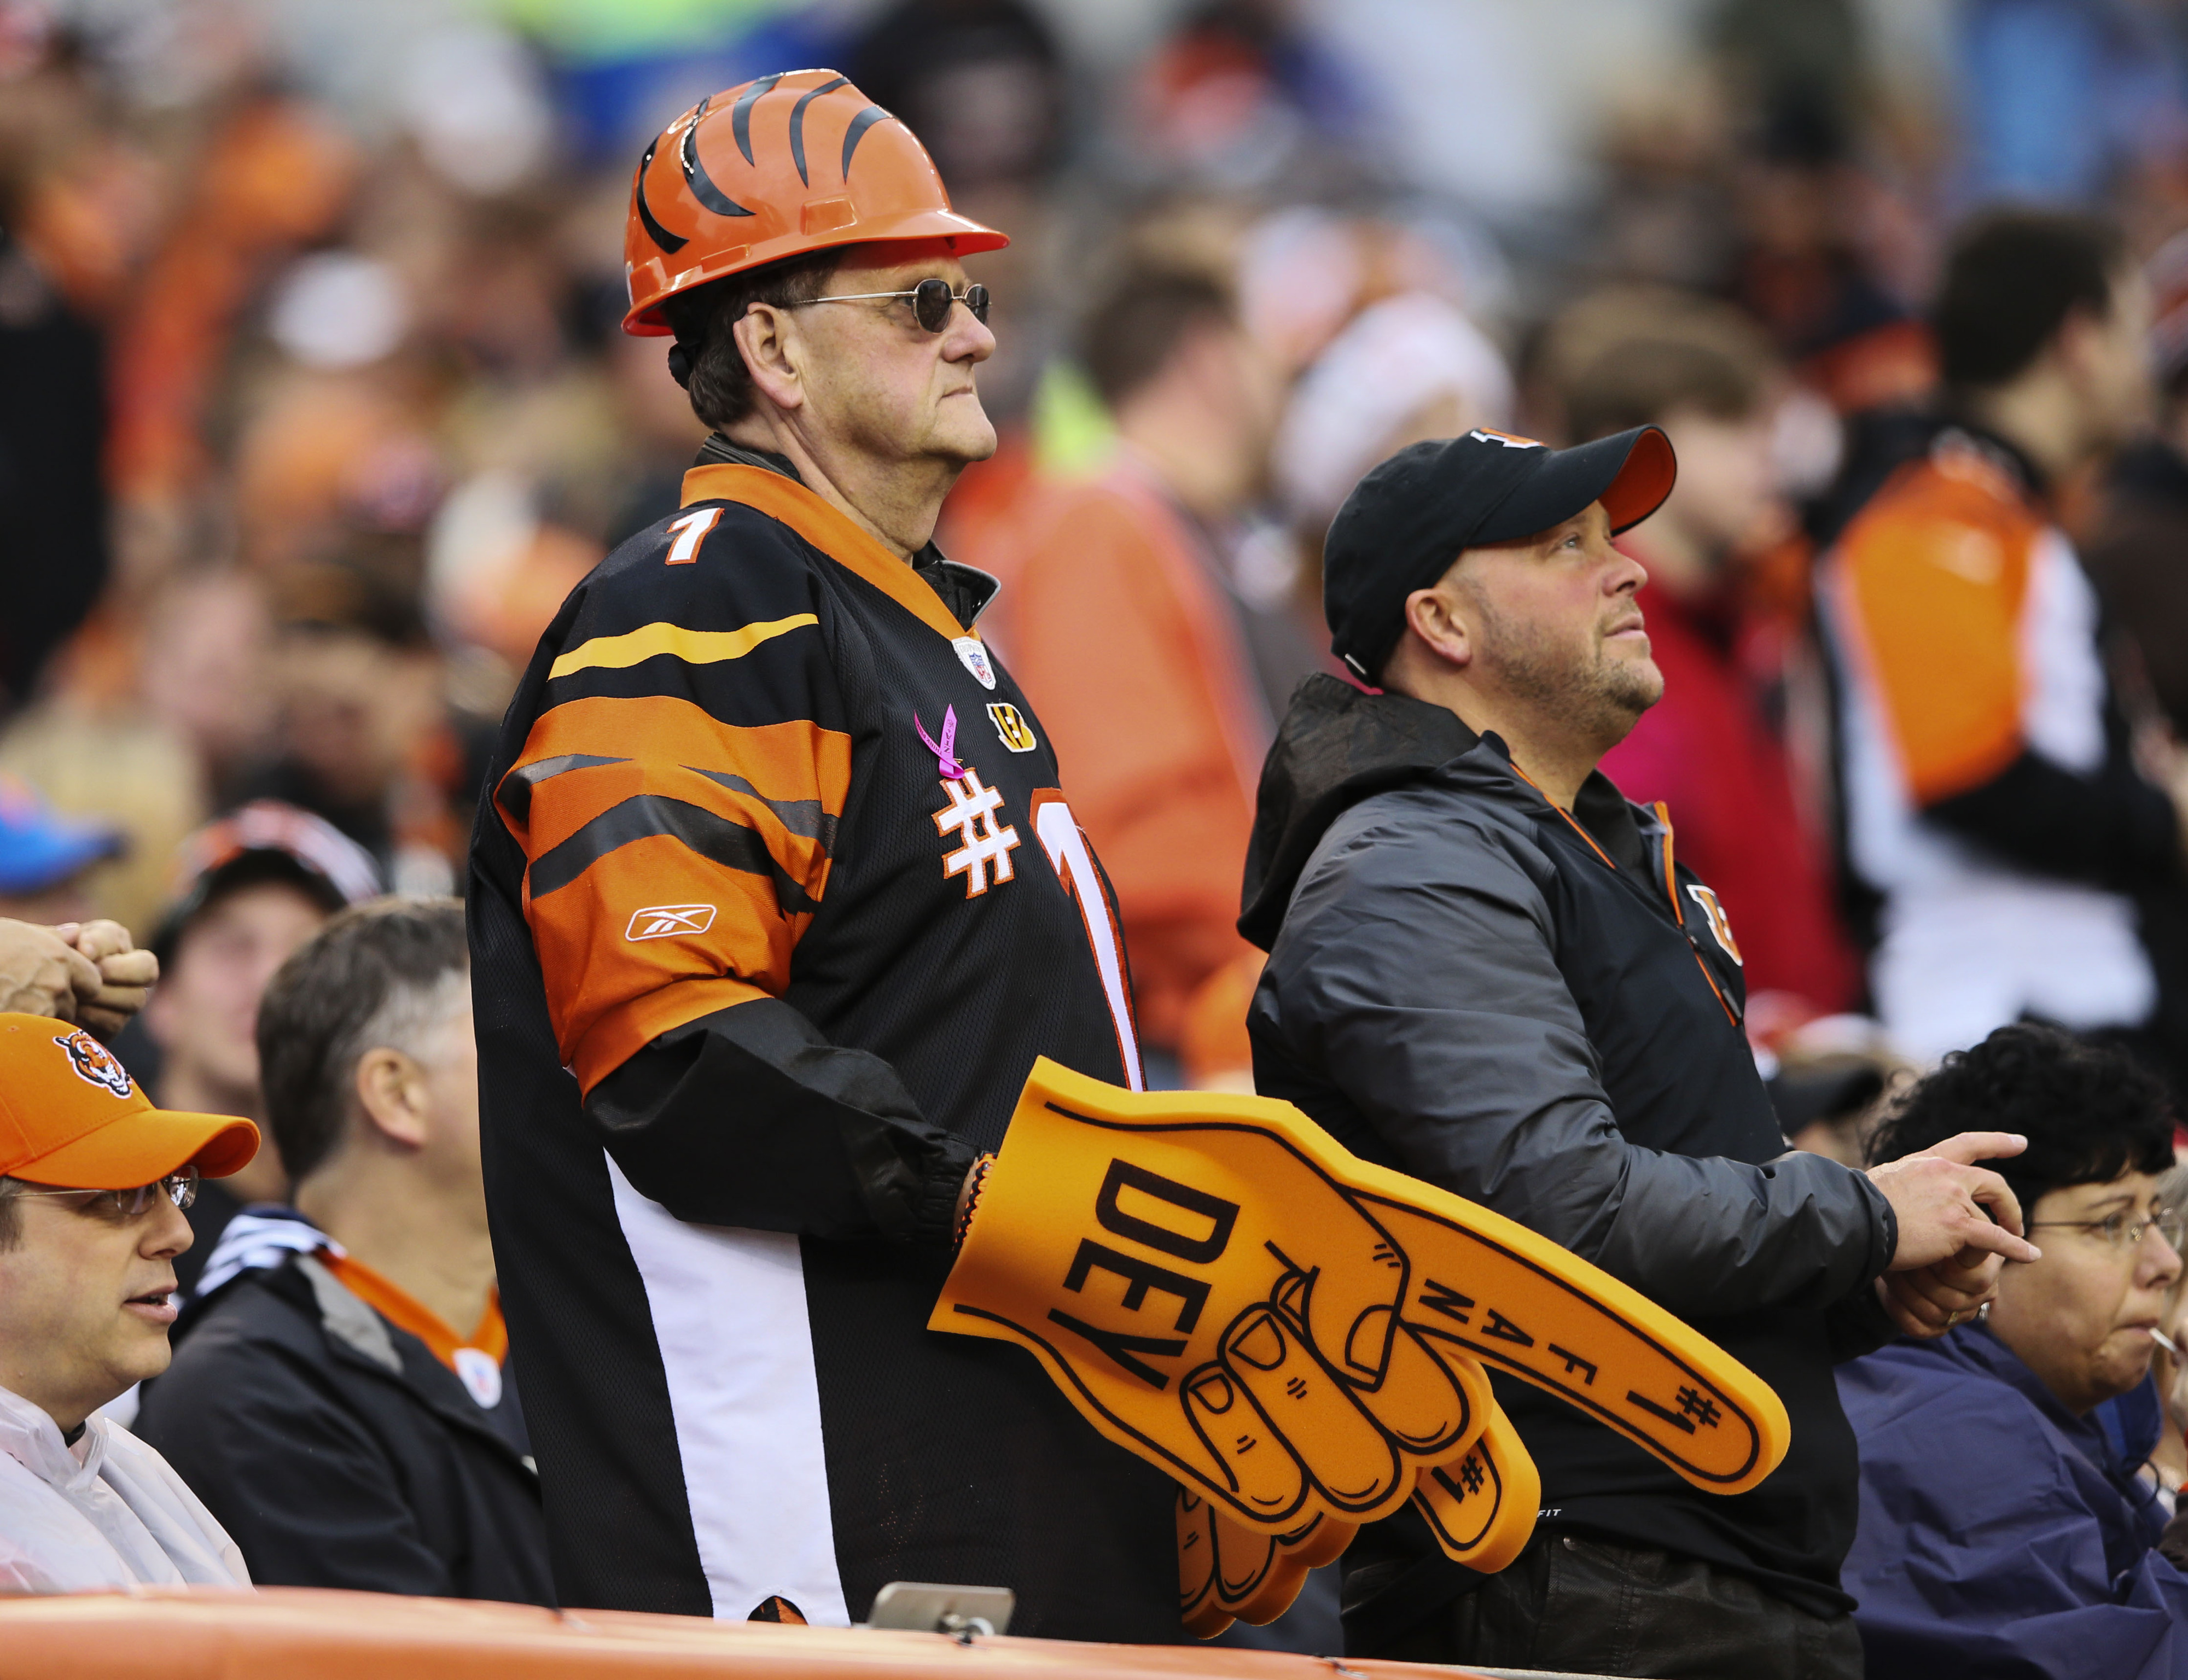 Even the Bengals #1 fan isn't sure how to process what happened on Sunday.